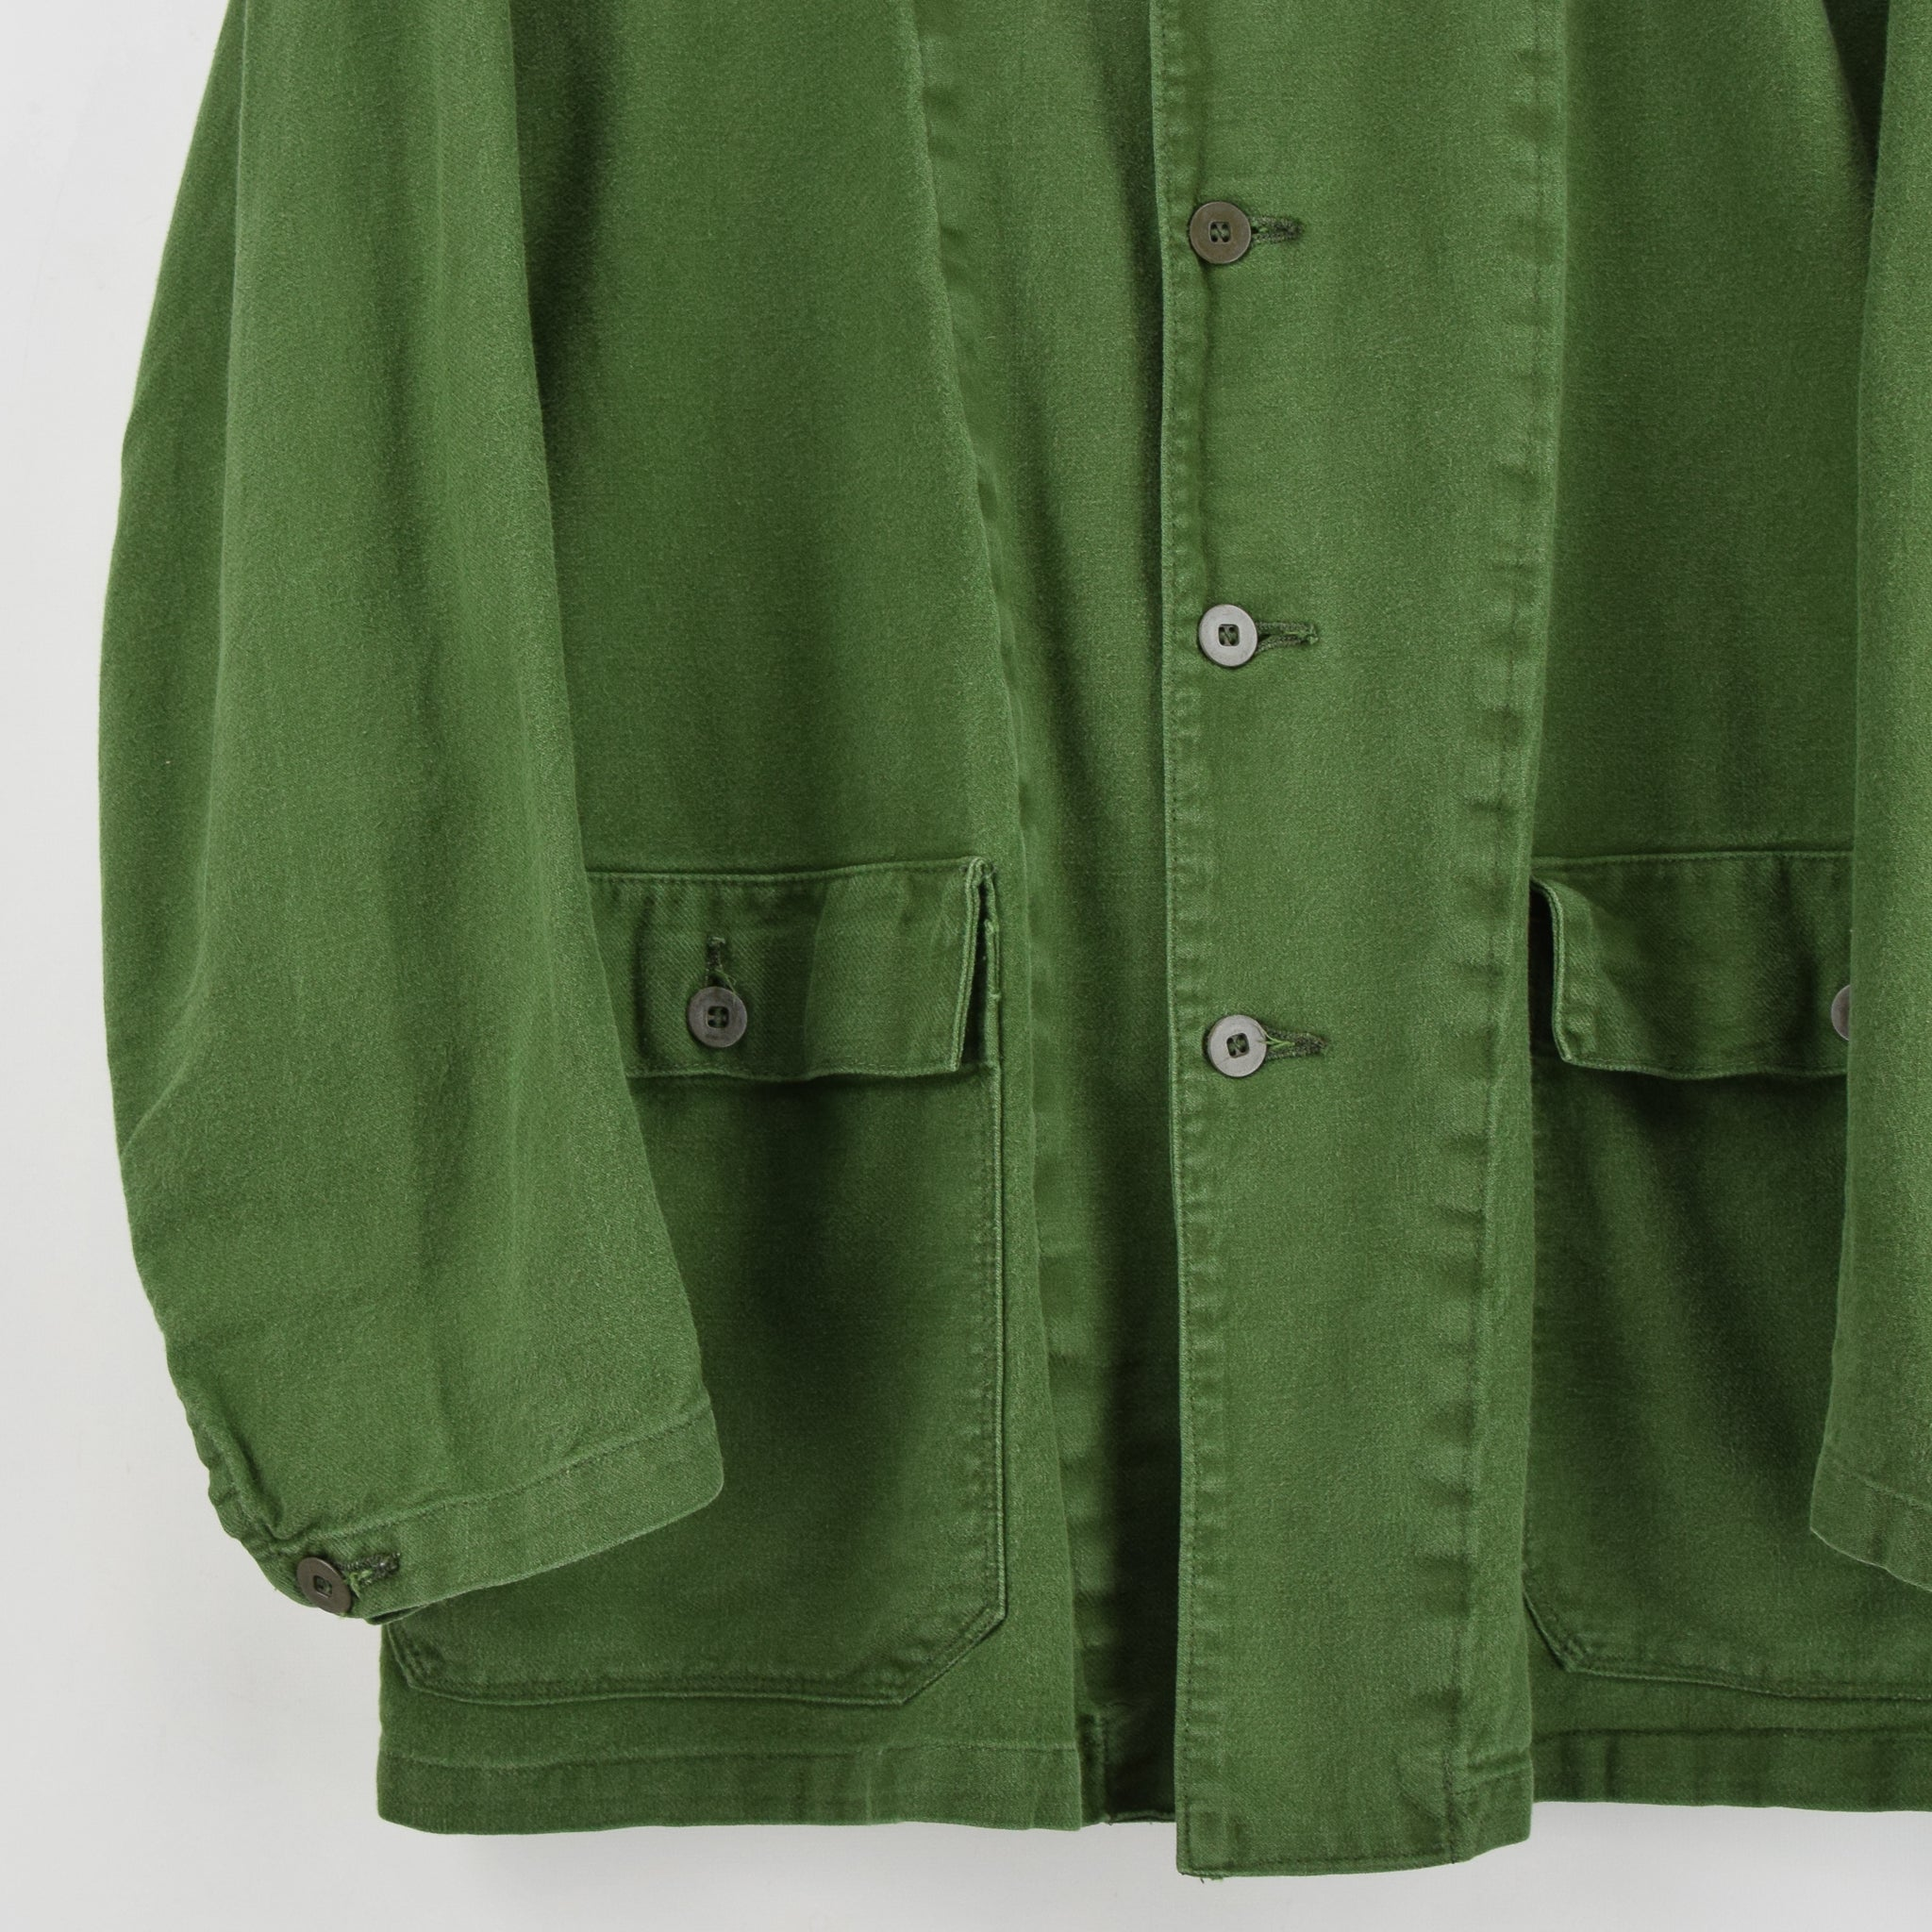 Vintage Swedish Worker Style Distressed Green Military Field Jacket M / L front hem